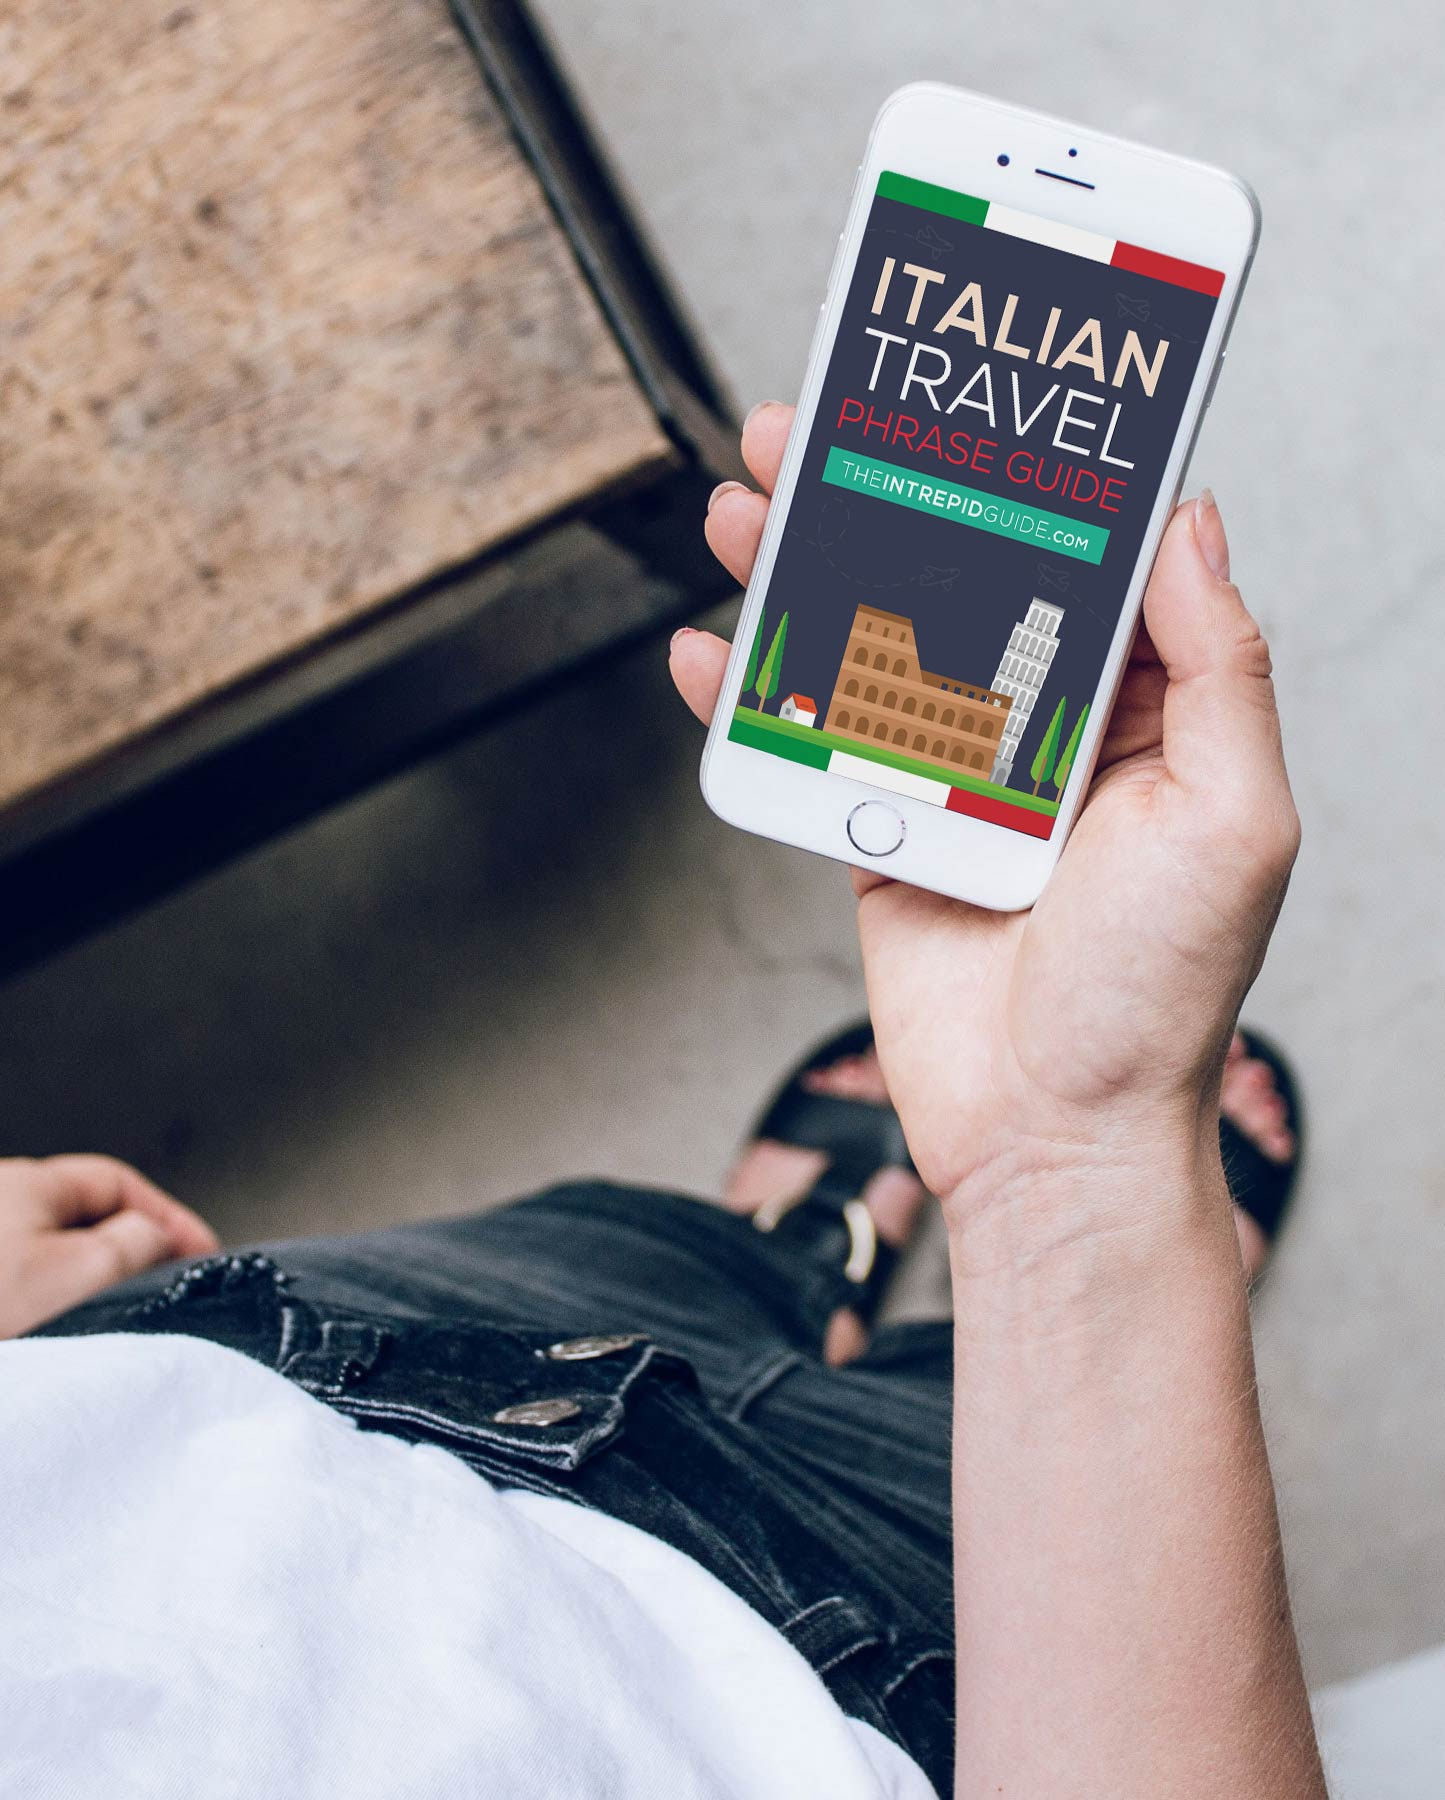 What Will Your Travels Be Like When You Speak Italian?